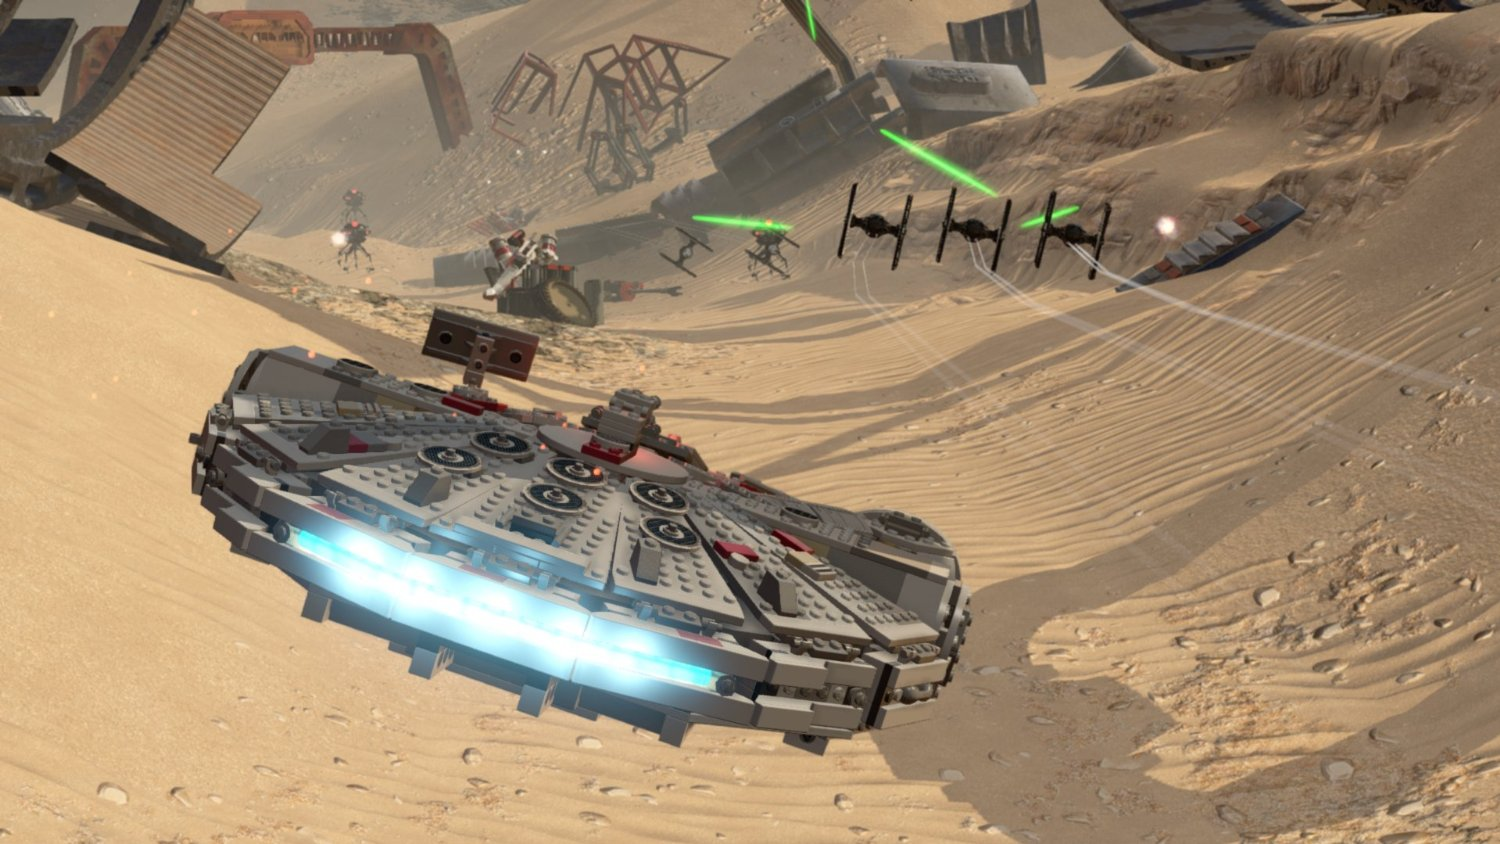 Lego Star Wars: The Force Awakens pro PS4